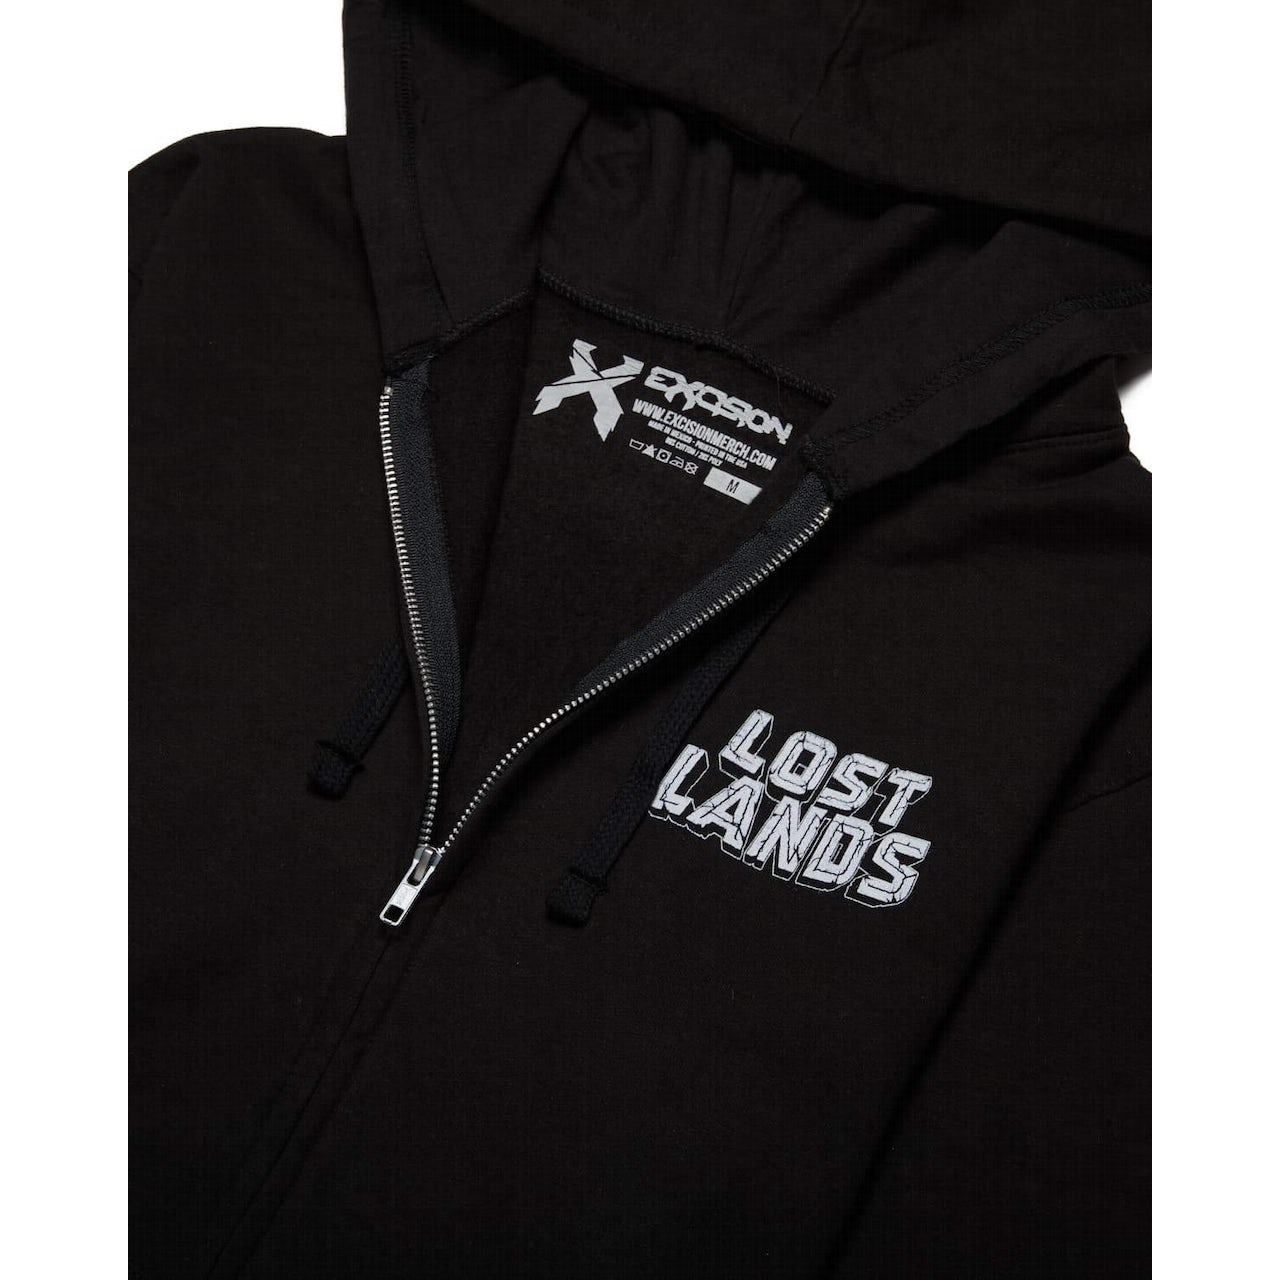 f6f420e66 Excision Lost Lands 2018 Lineup Full-Zip Hoodie - Black/White